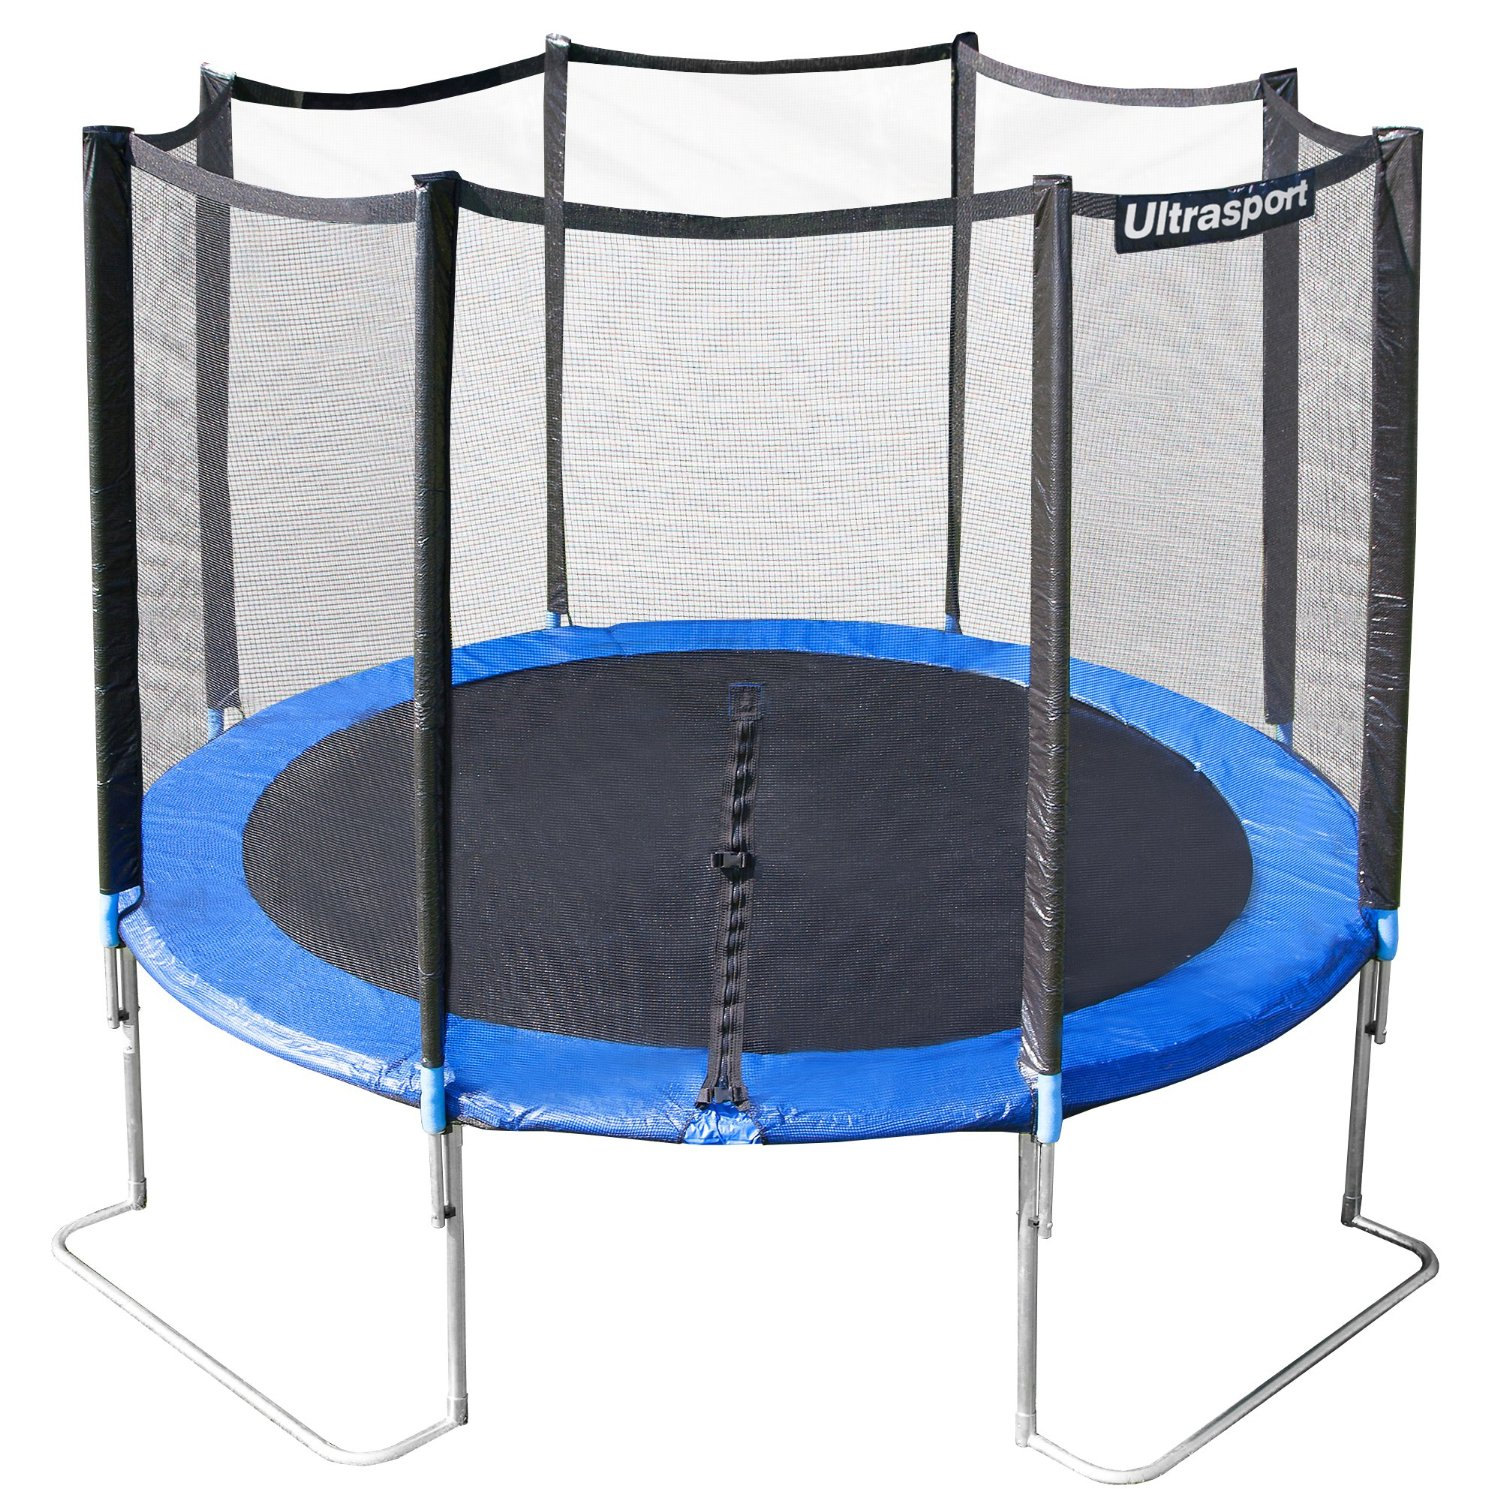 ultrasport-trampolin-jumper